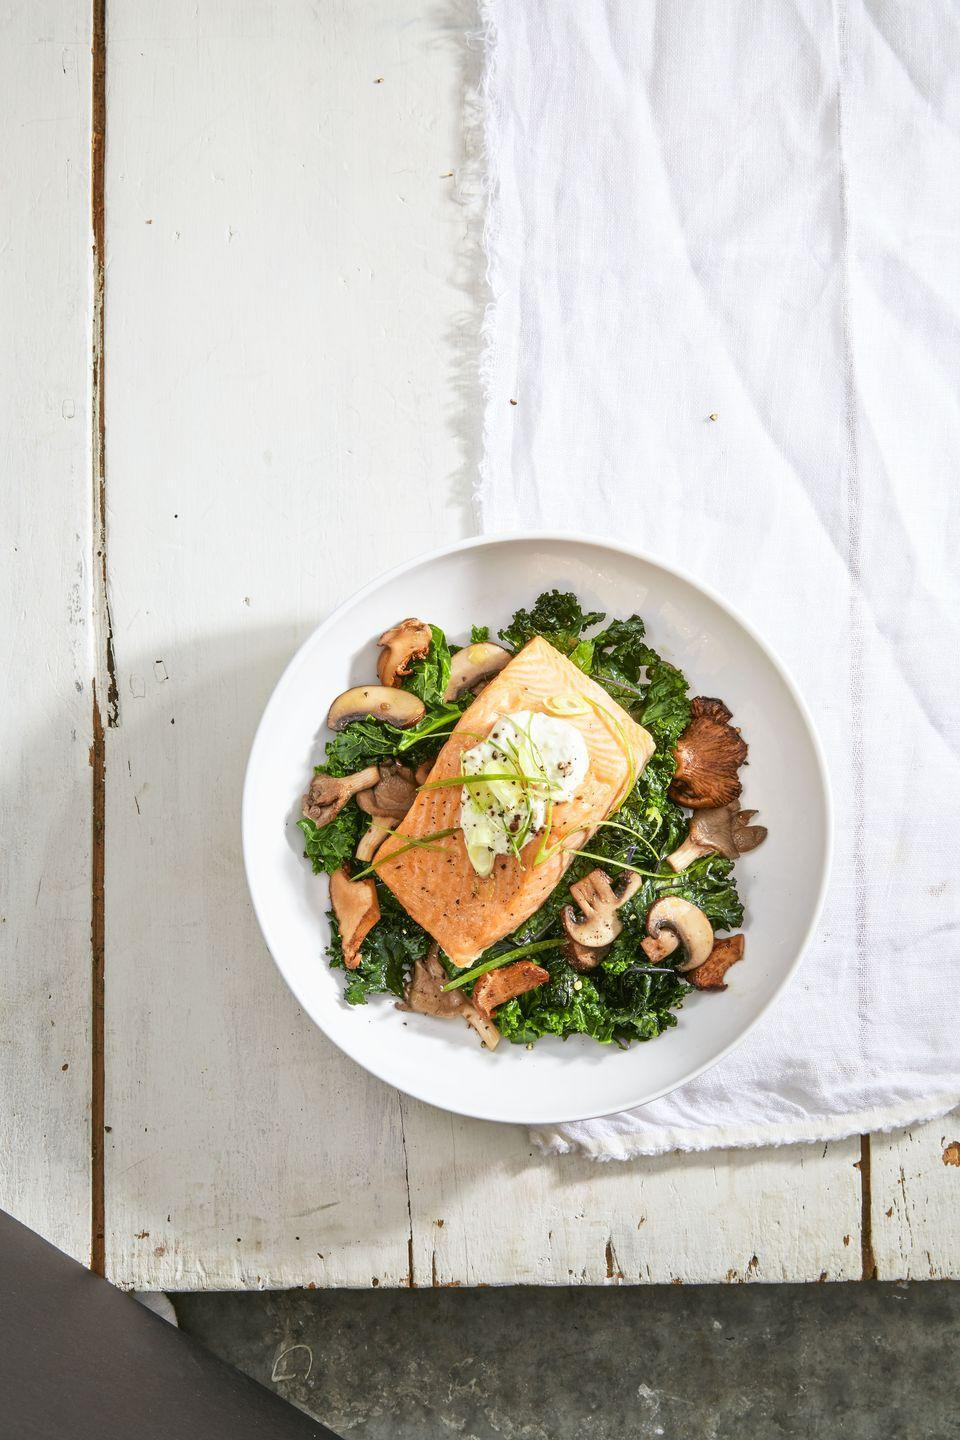 """<p>This Nordic-inspired salmon dish is hearty, healthy, and so delicious.</p><p><em><a href=""""https://www.goodhousekeeping.com/food-recipes/easy/a36252/salmon-with-skyr-and-sauteed-kale/"""" rel=""""nofollow noopener"""" target=""""_blank"""" data-ylk=""""slk:Get the recipe for Salmon with Skyr and Sautéed Kale »"""" class=""""link rapid-noclick-resp"""">Get the recipe for Salmon with Skyr and Sautéed Kale »</a></em> </p>"""